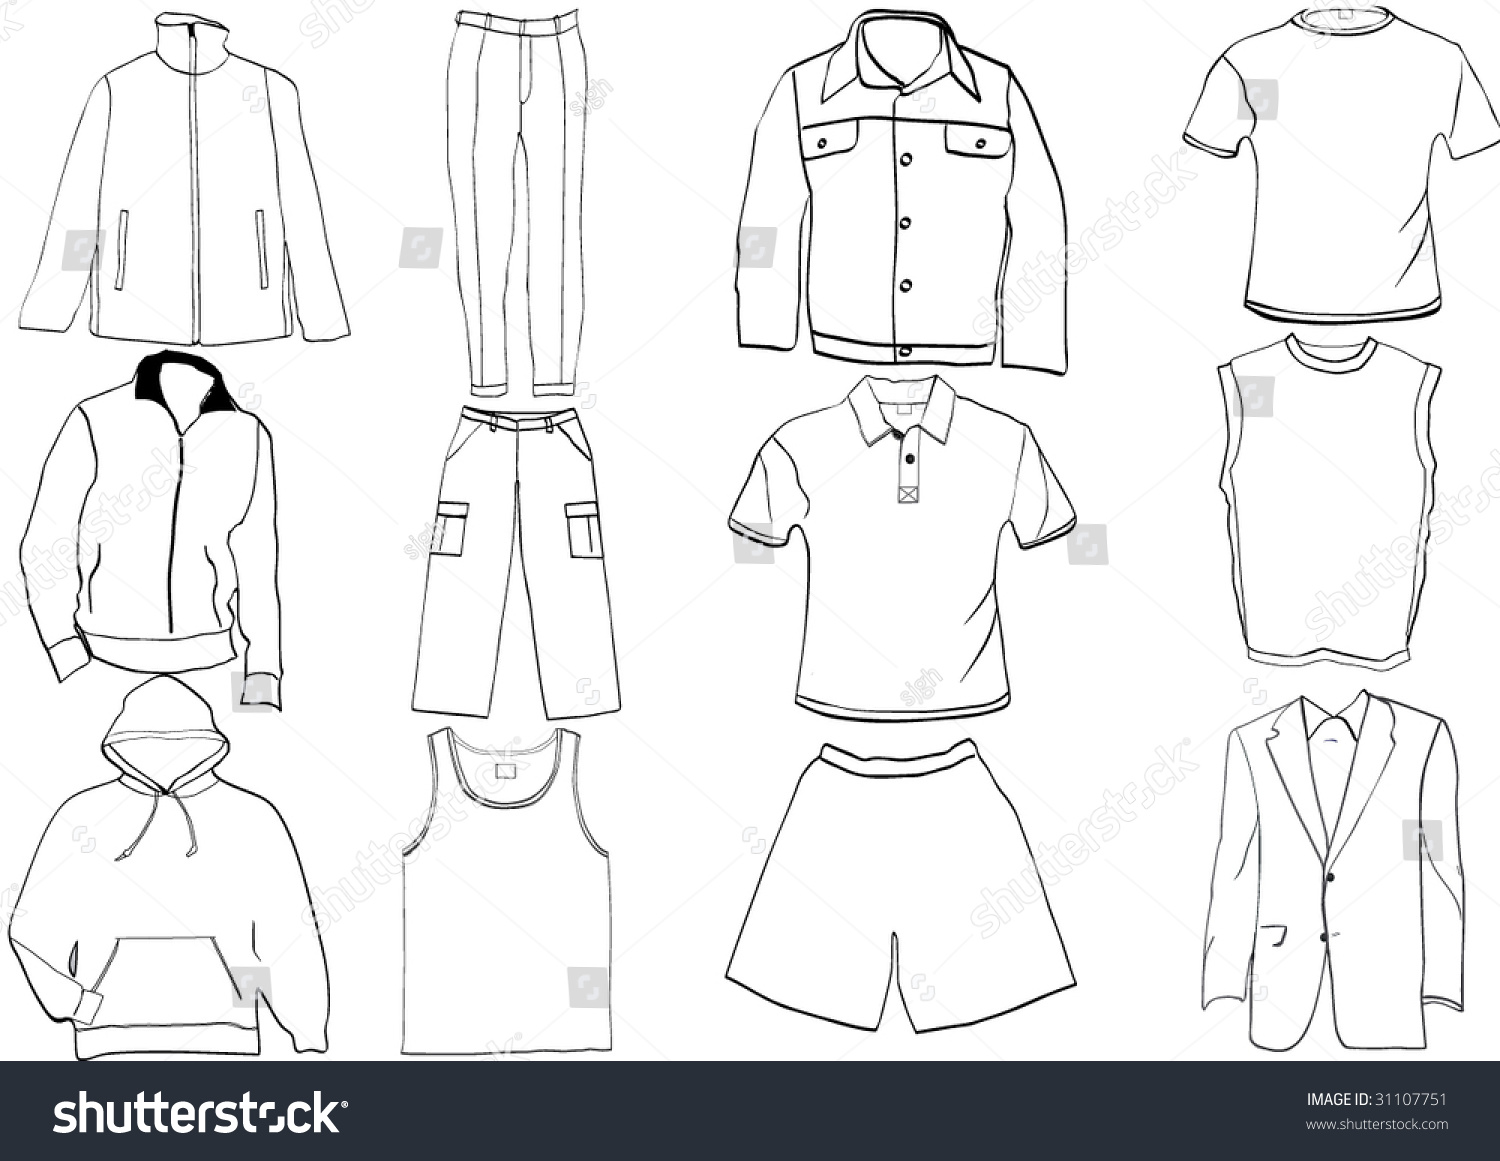 clothes template - Keni.candlecomfortzone.com